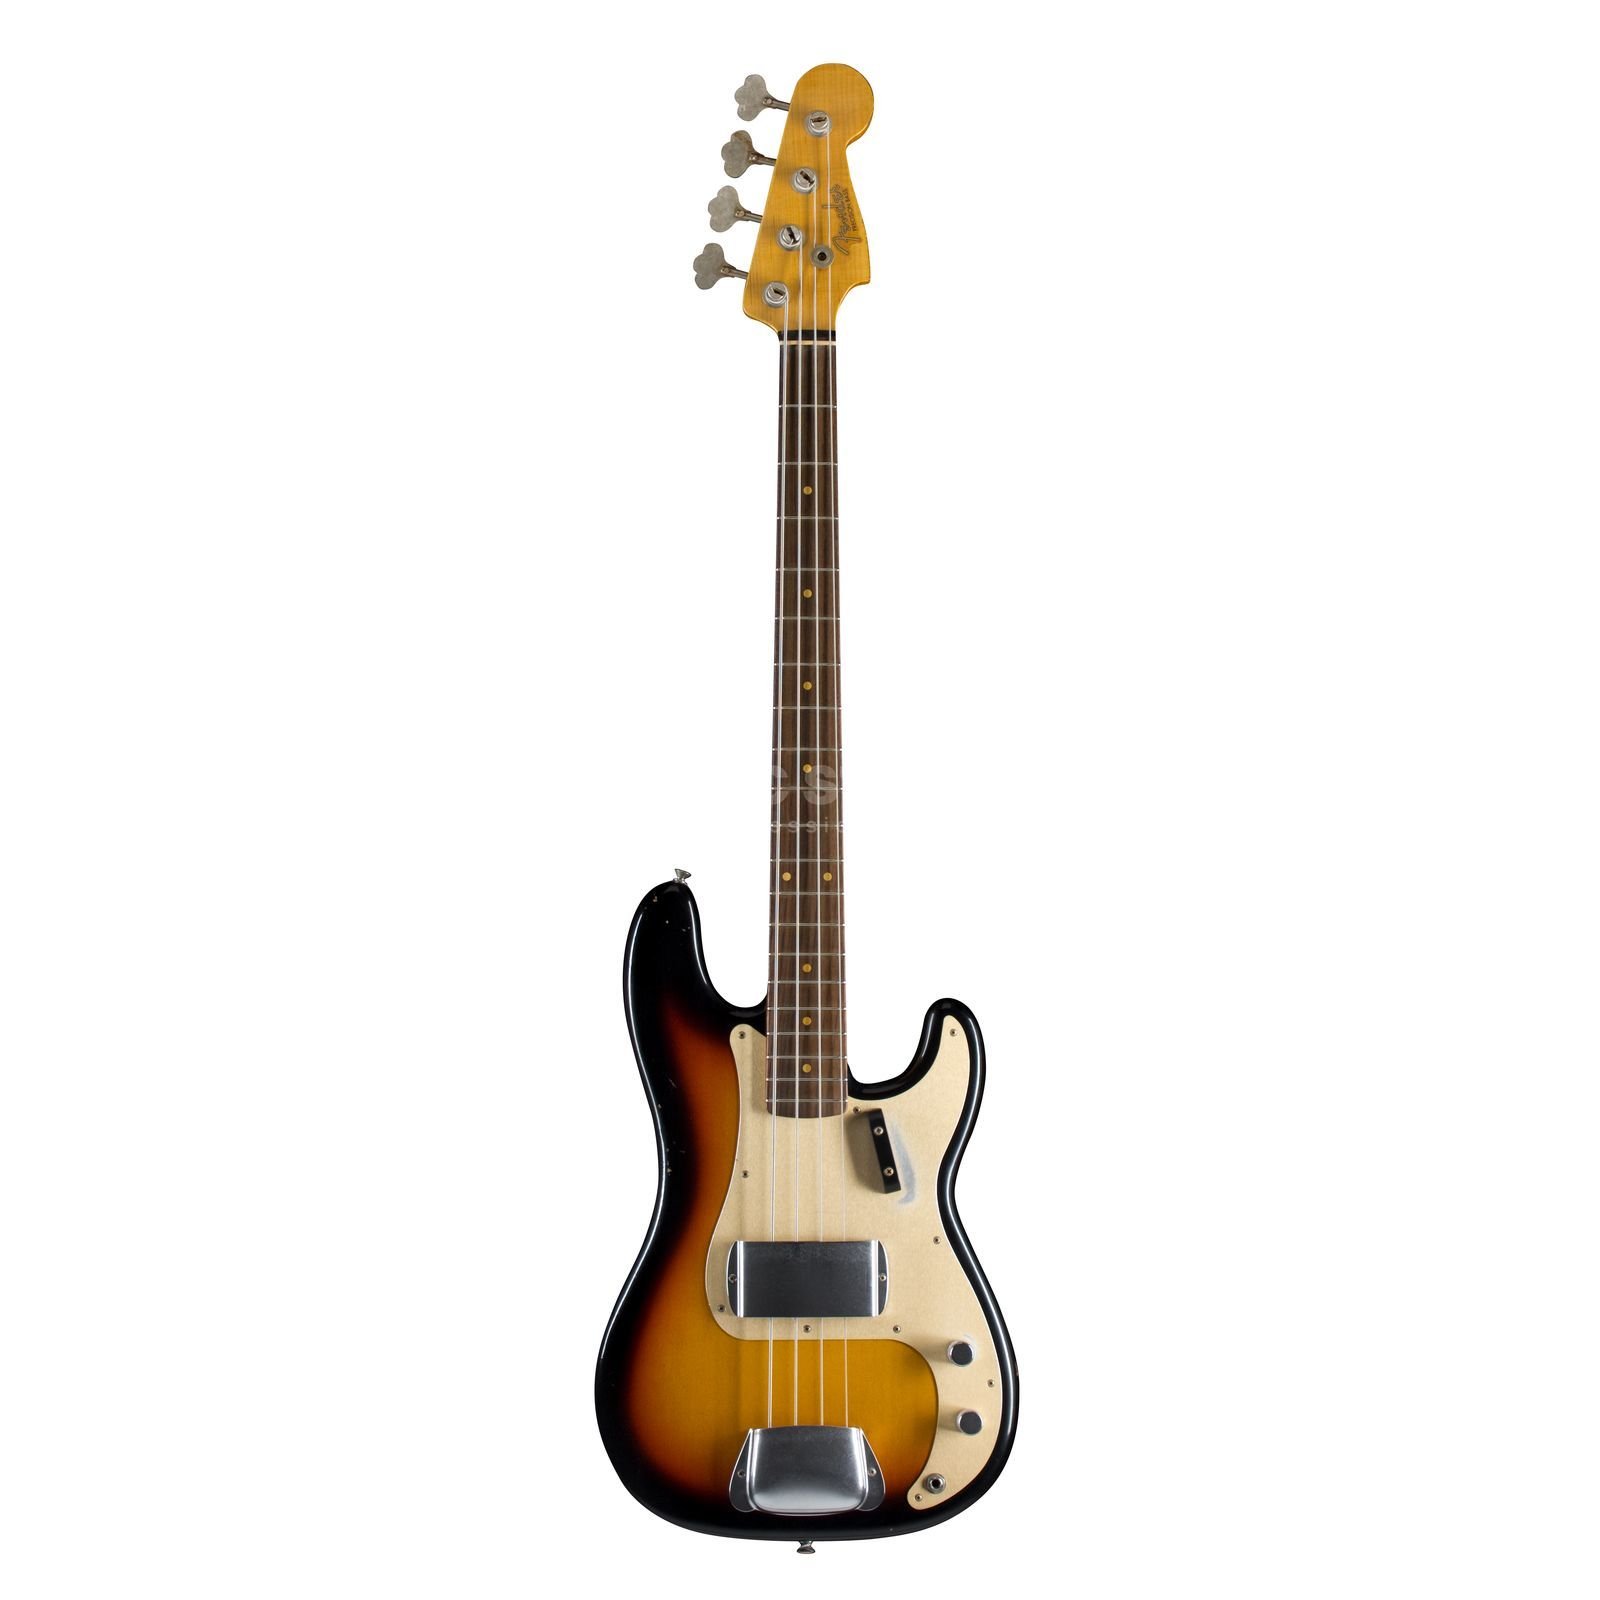 Fender CS '59 P-Bass Journeyman RW Faded 3-Tone-SB, S#:R79307 Produktbild